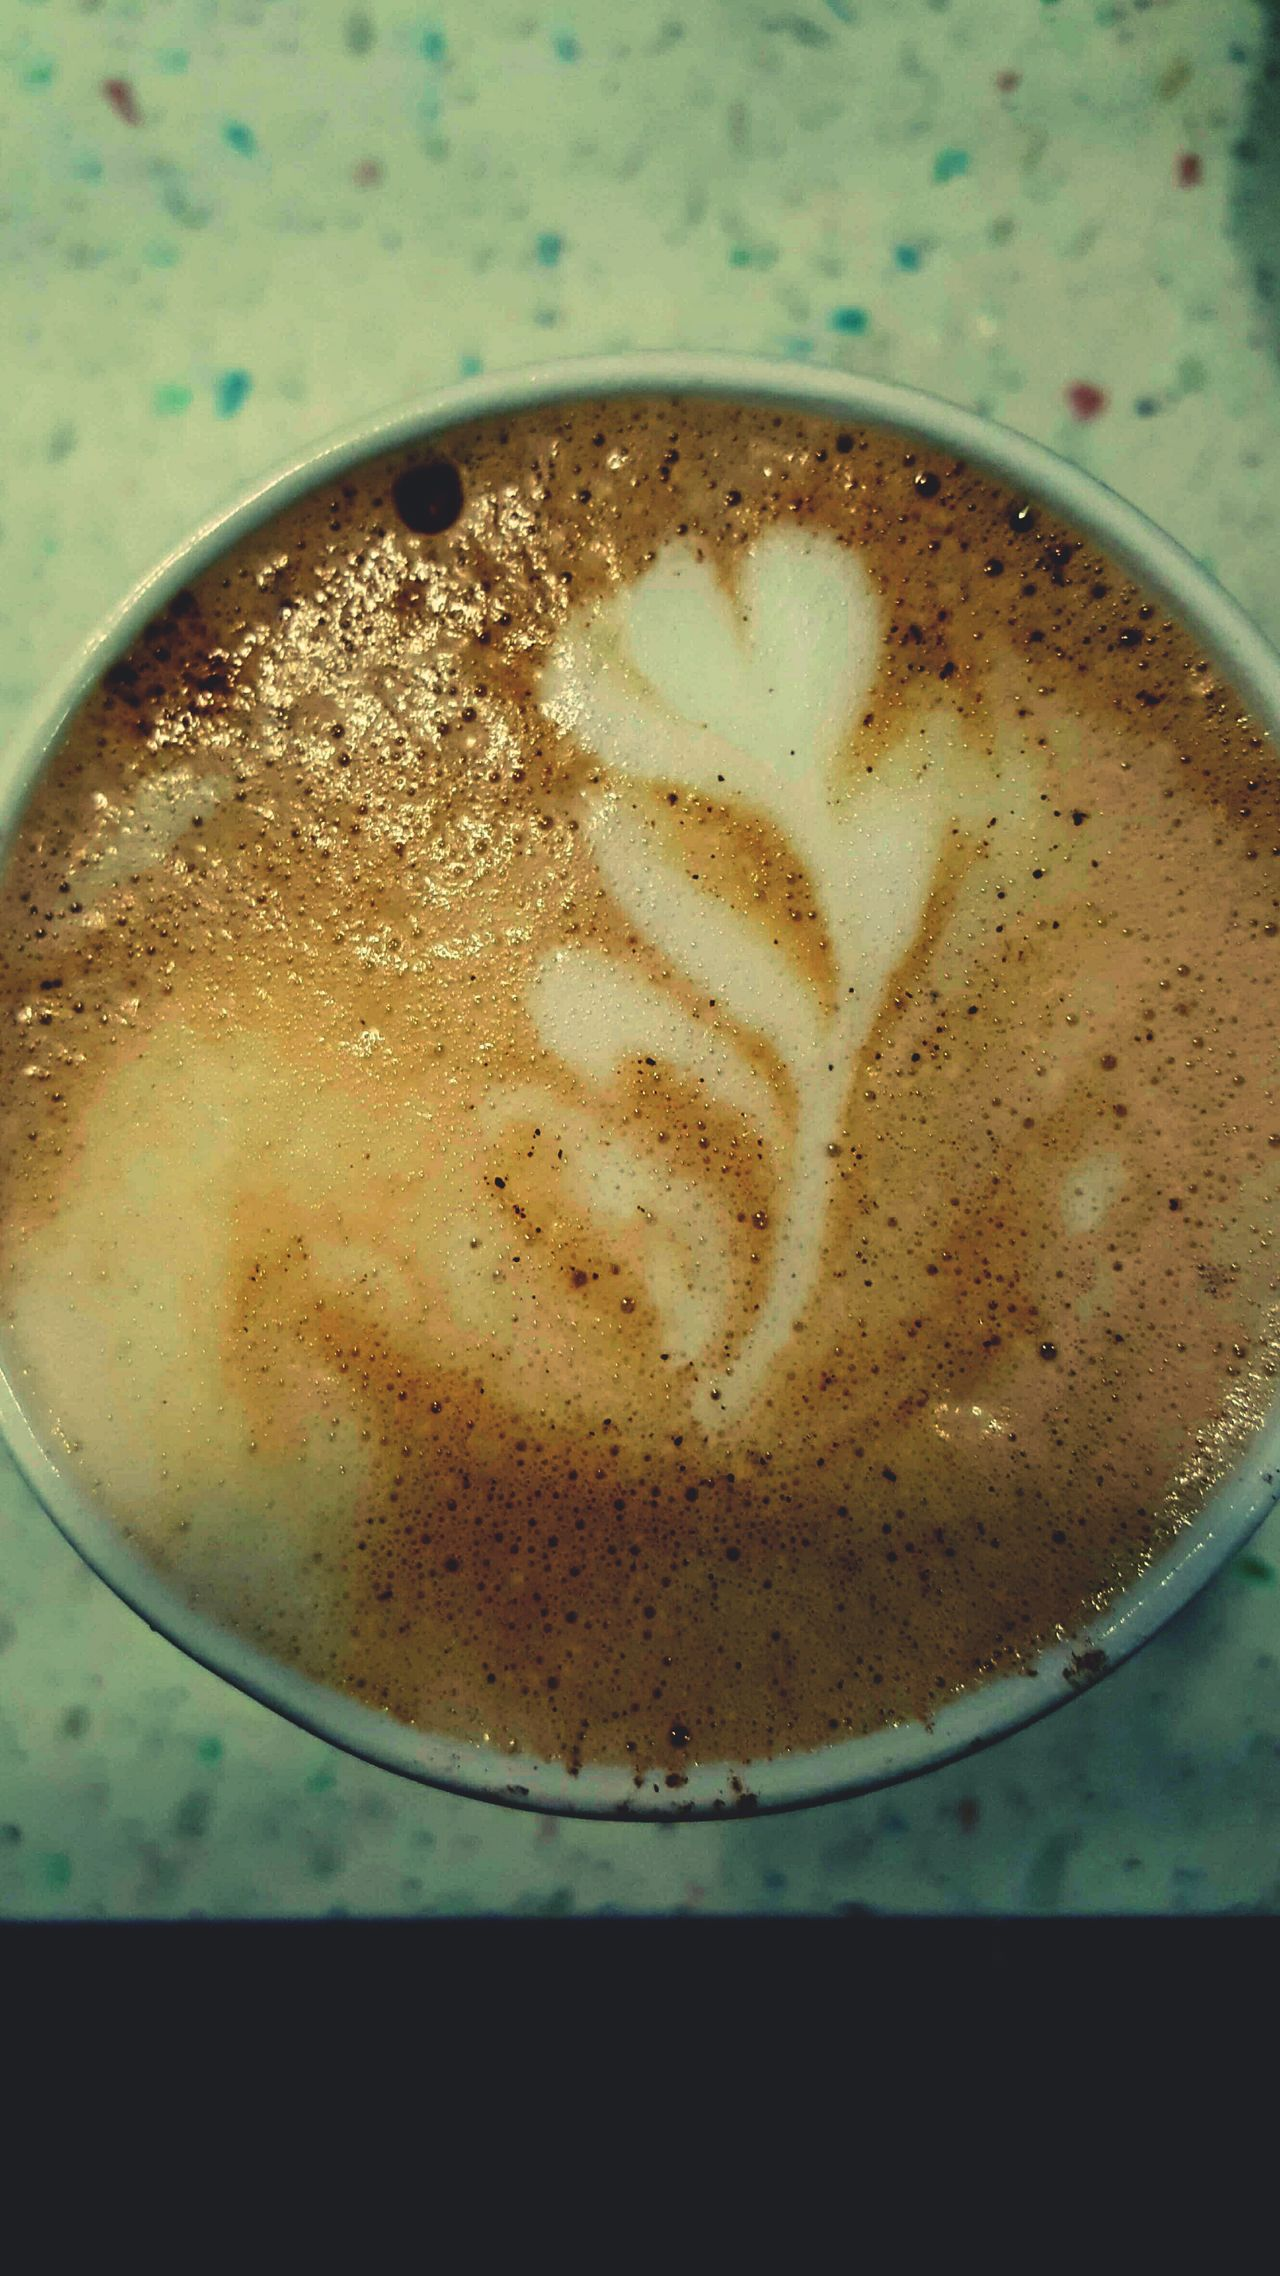 Drink Close-up Frothy Drink Food And Drink Refreshment Indoors  Cappuccino No People Freshness Latte Froth Day